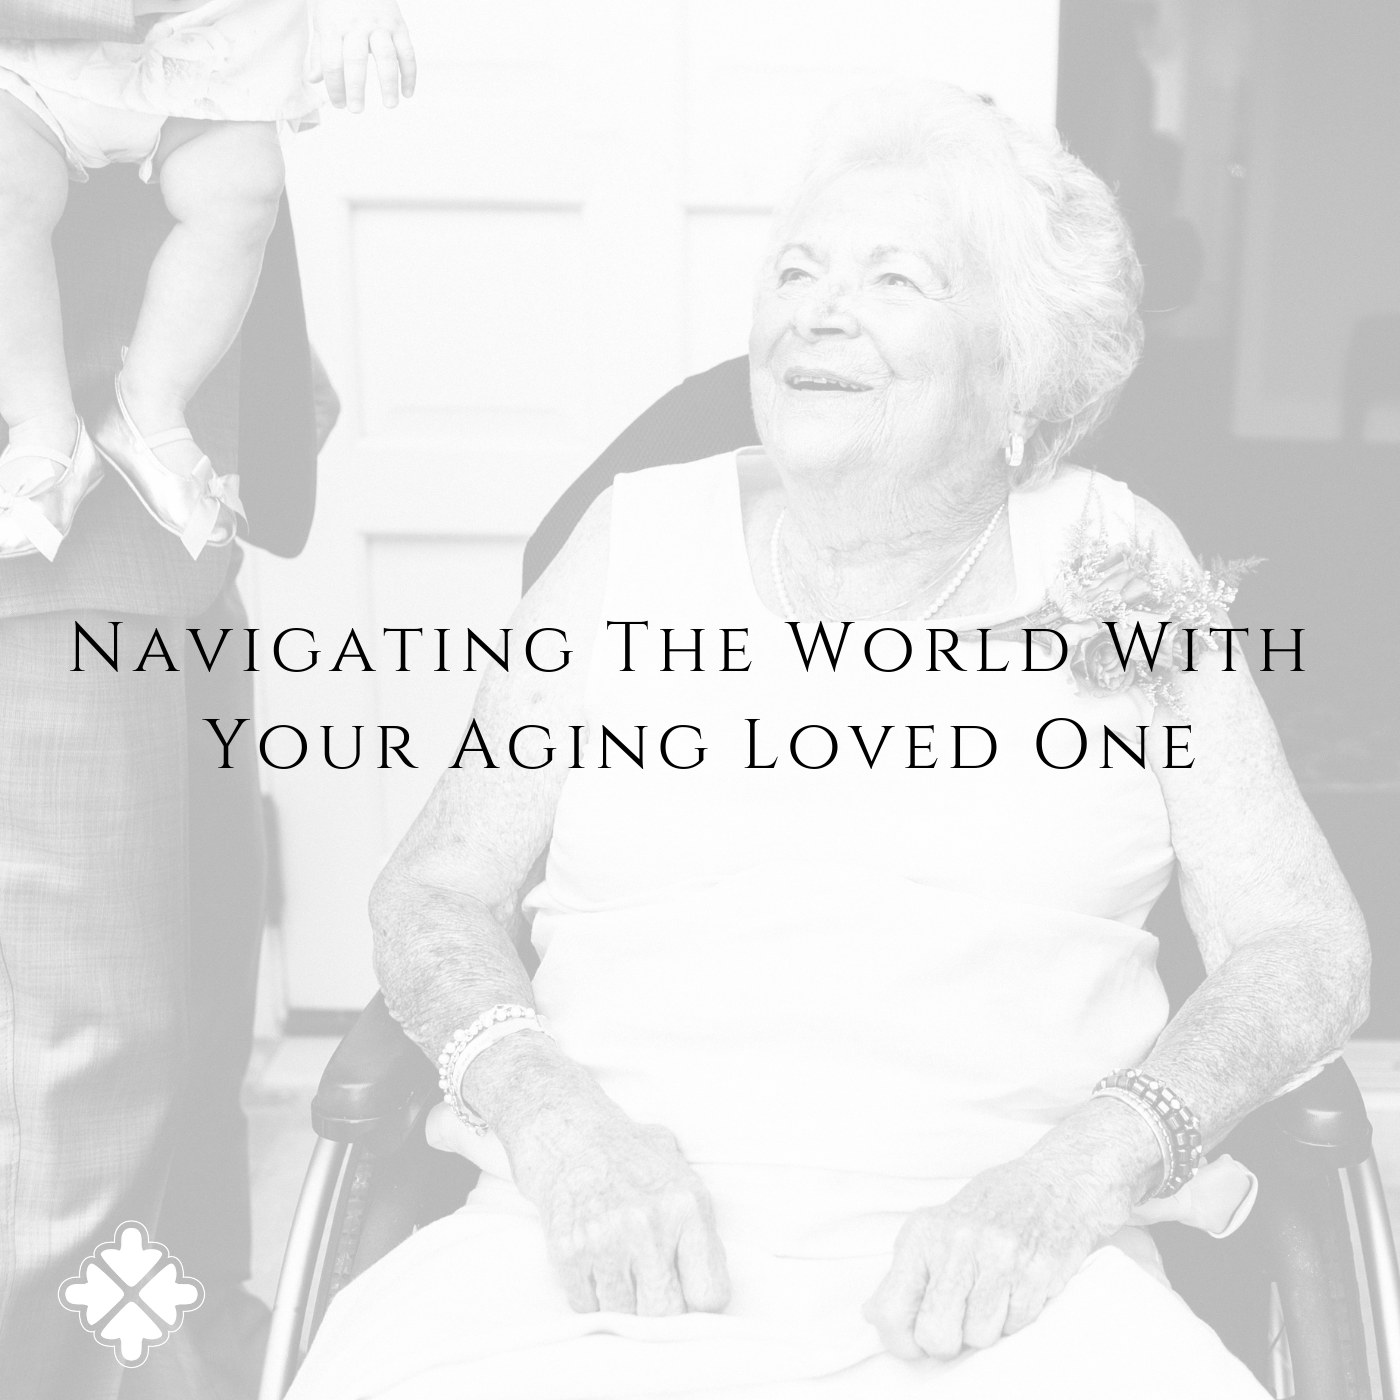 Navigating the World with Your Aging Loved One